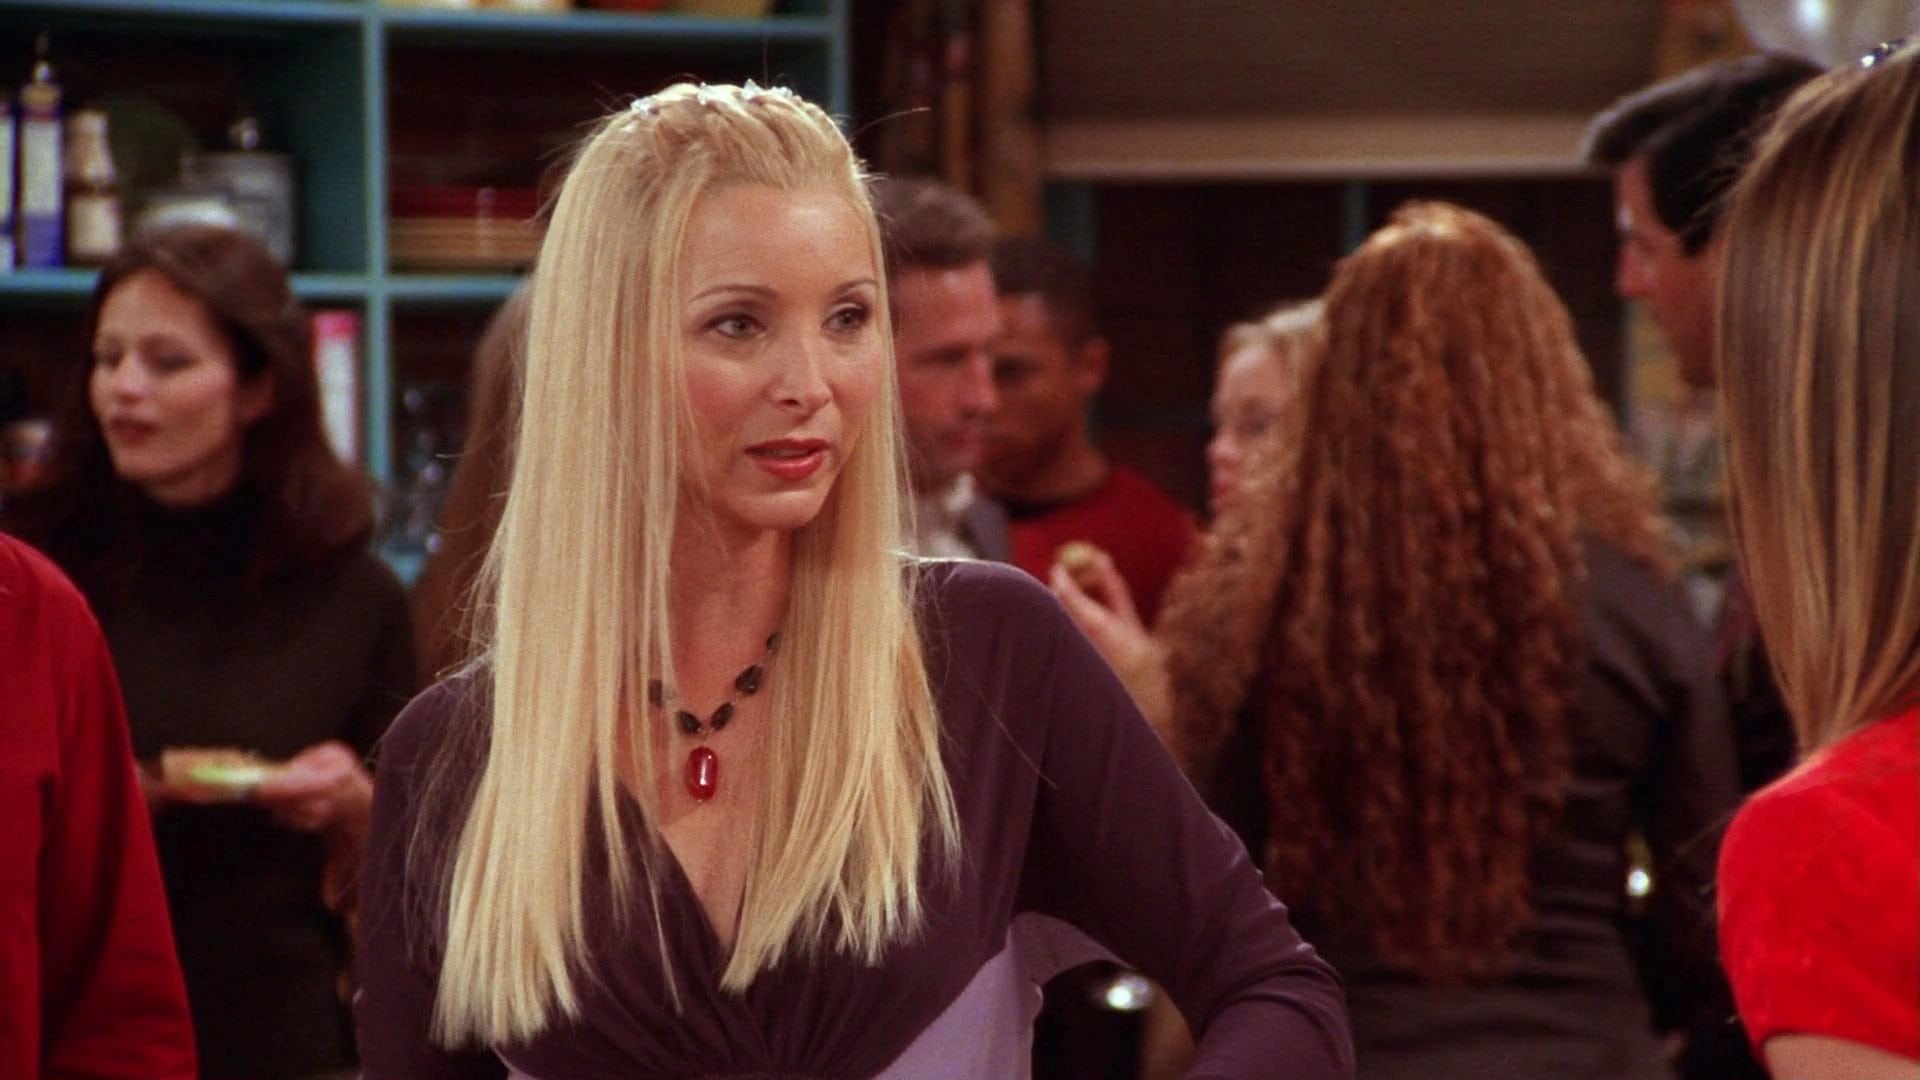 Friends - Season 9 Episode 12 : The One with Phoebe's Rats